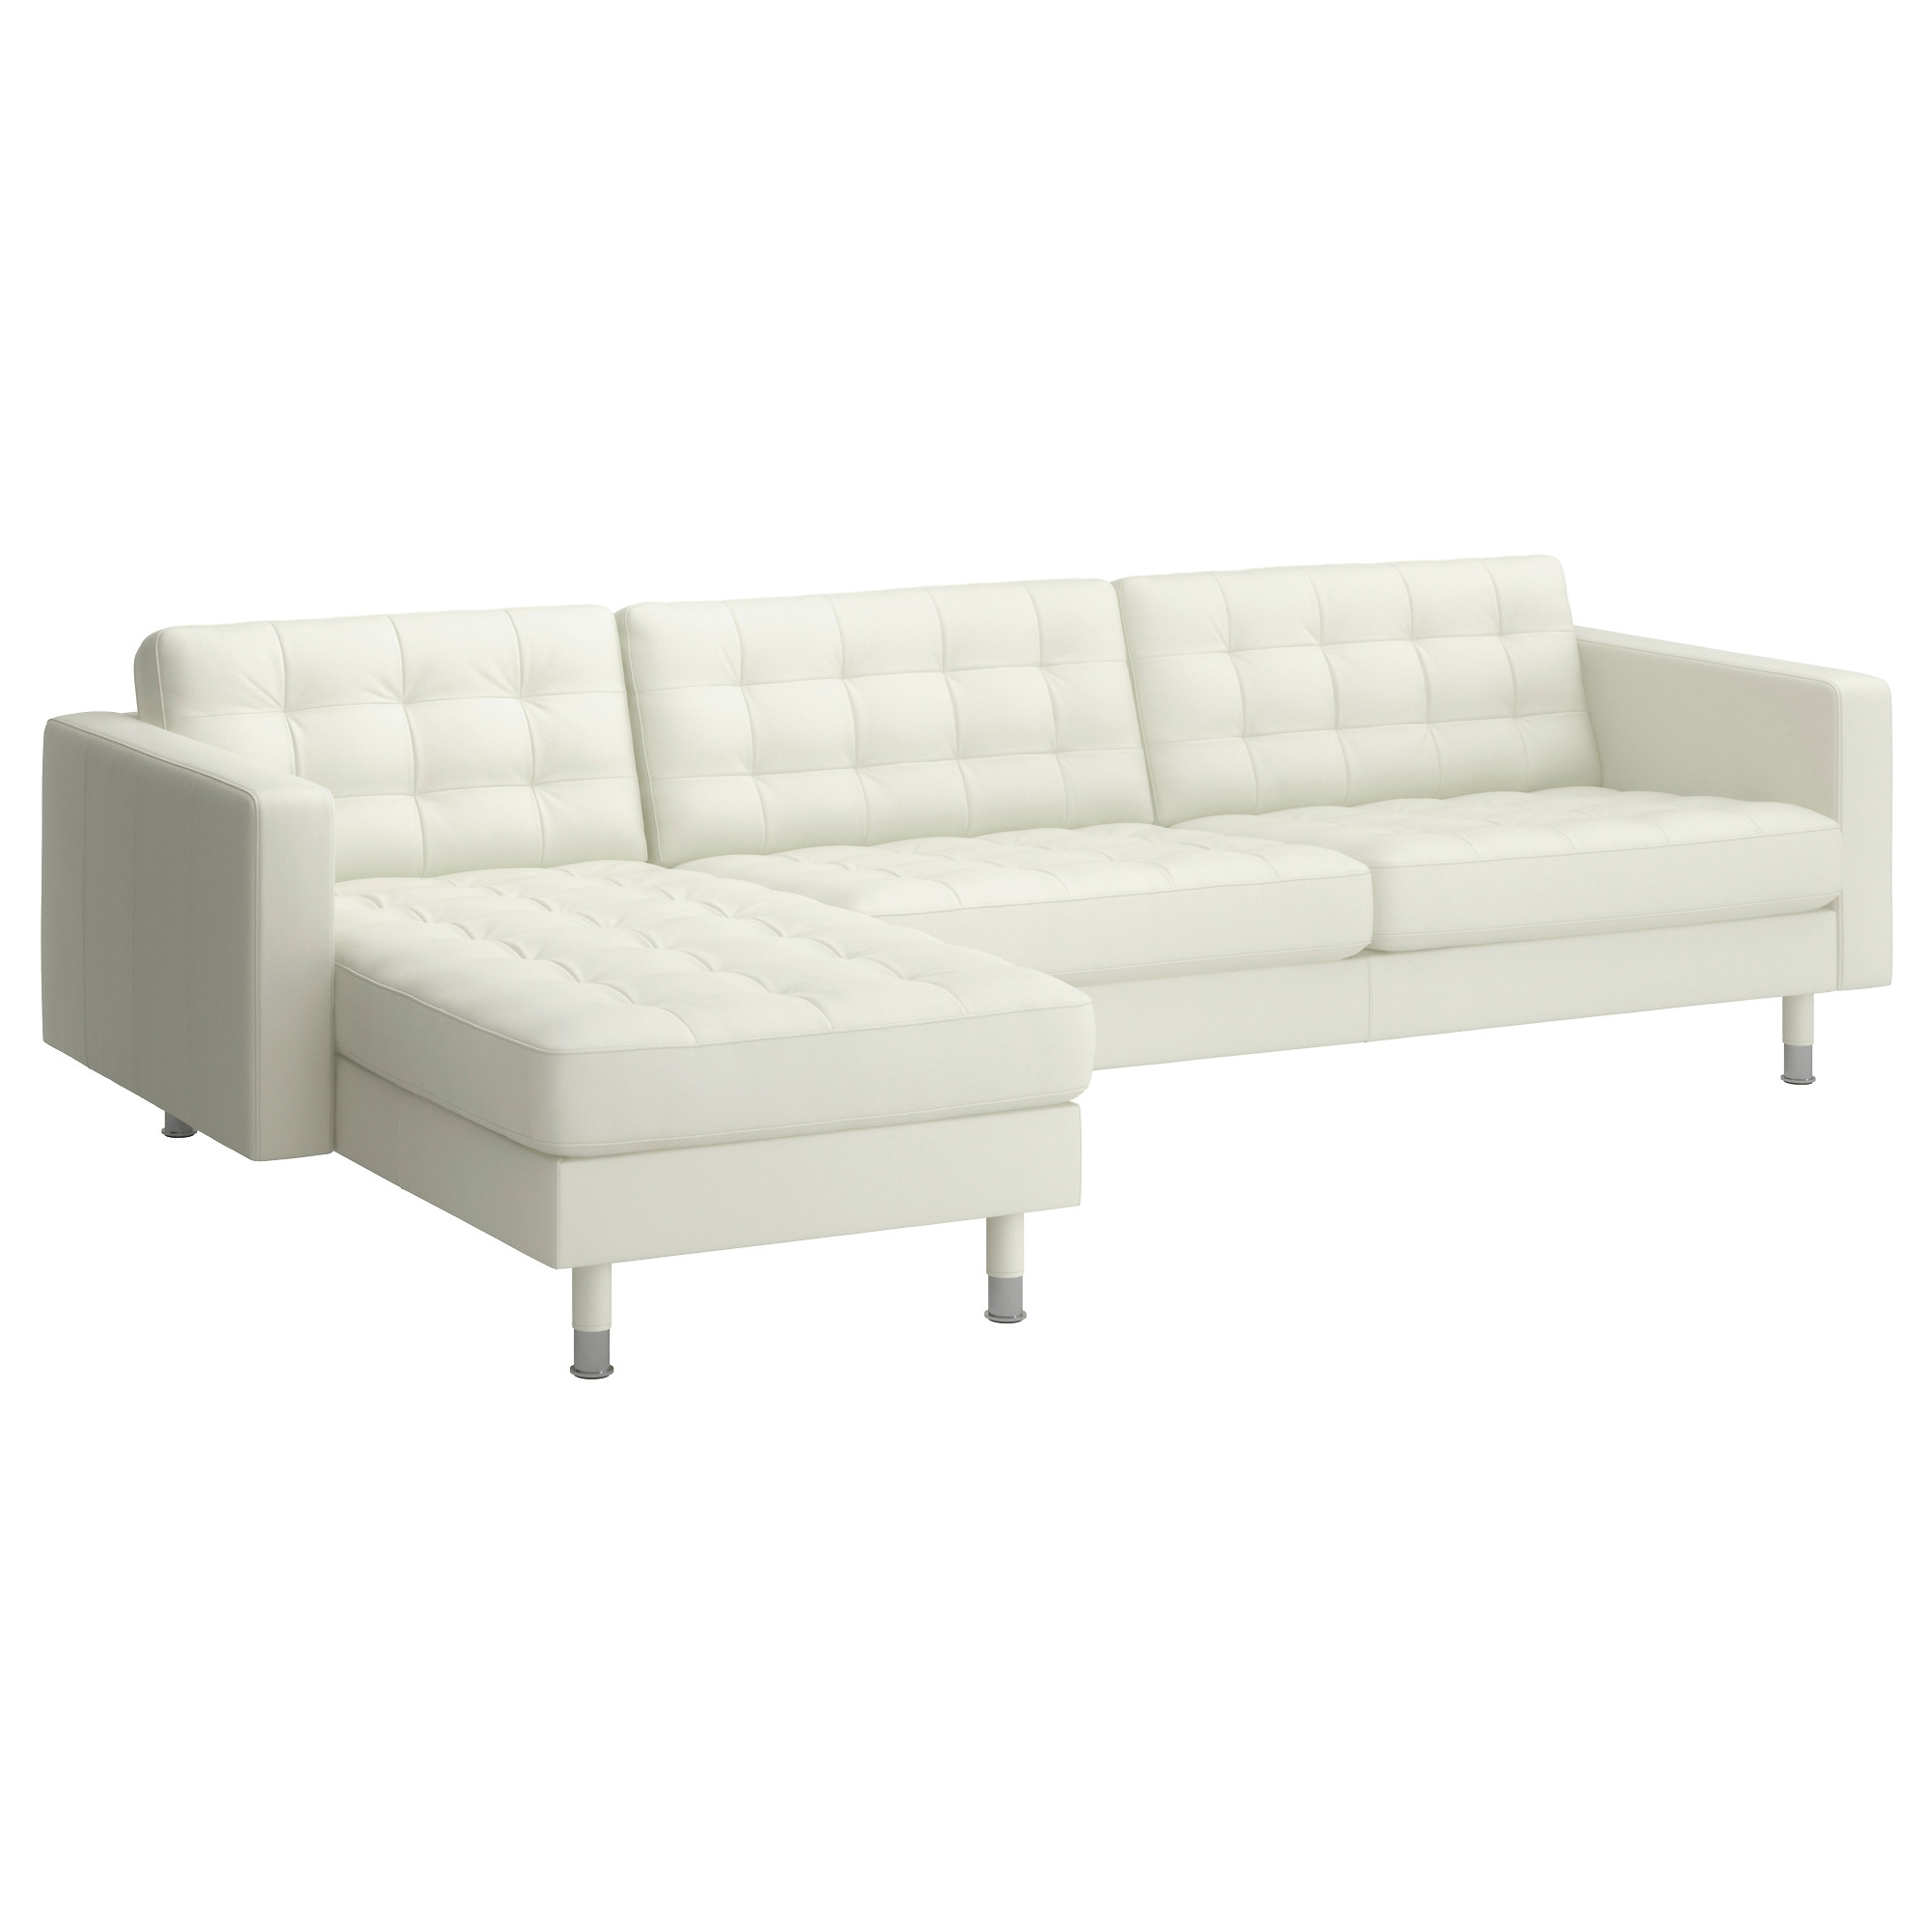 Fashionable Landskrona Sectional, 4 Seat – Grann/bomstad White, Metal – Ikea With White Leather Sectionals With Chaise (View 13 of 15)